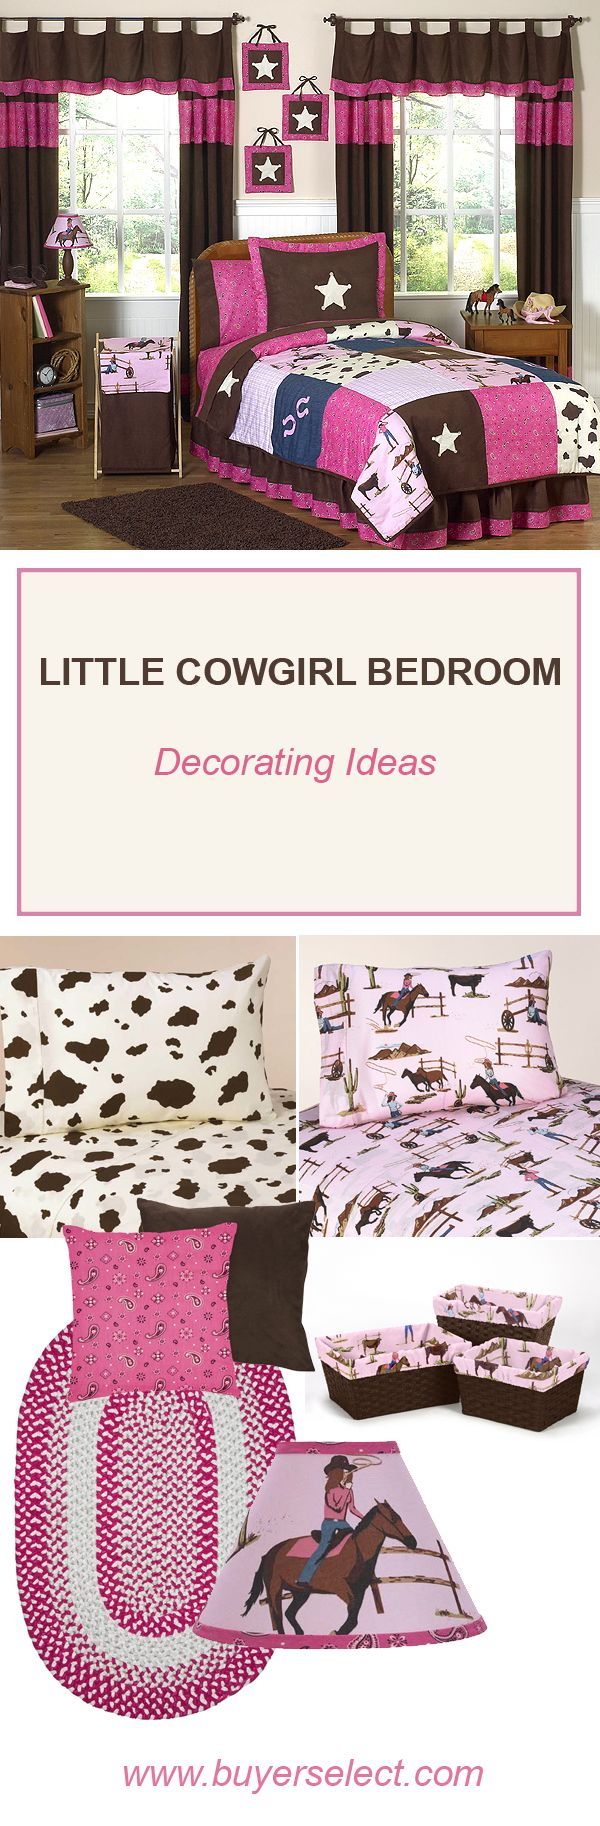 Little Cowgirl Bedding | Cowgirl Room Decor & Decorating Tips